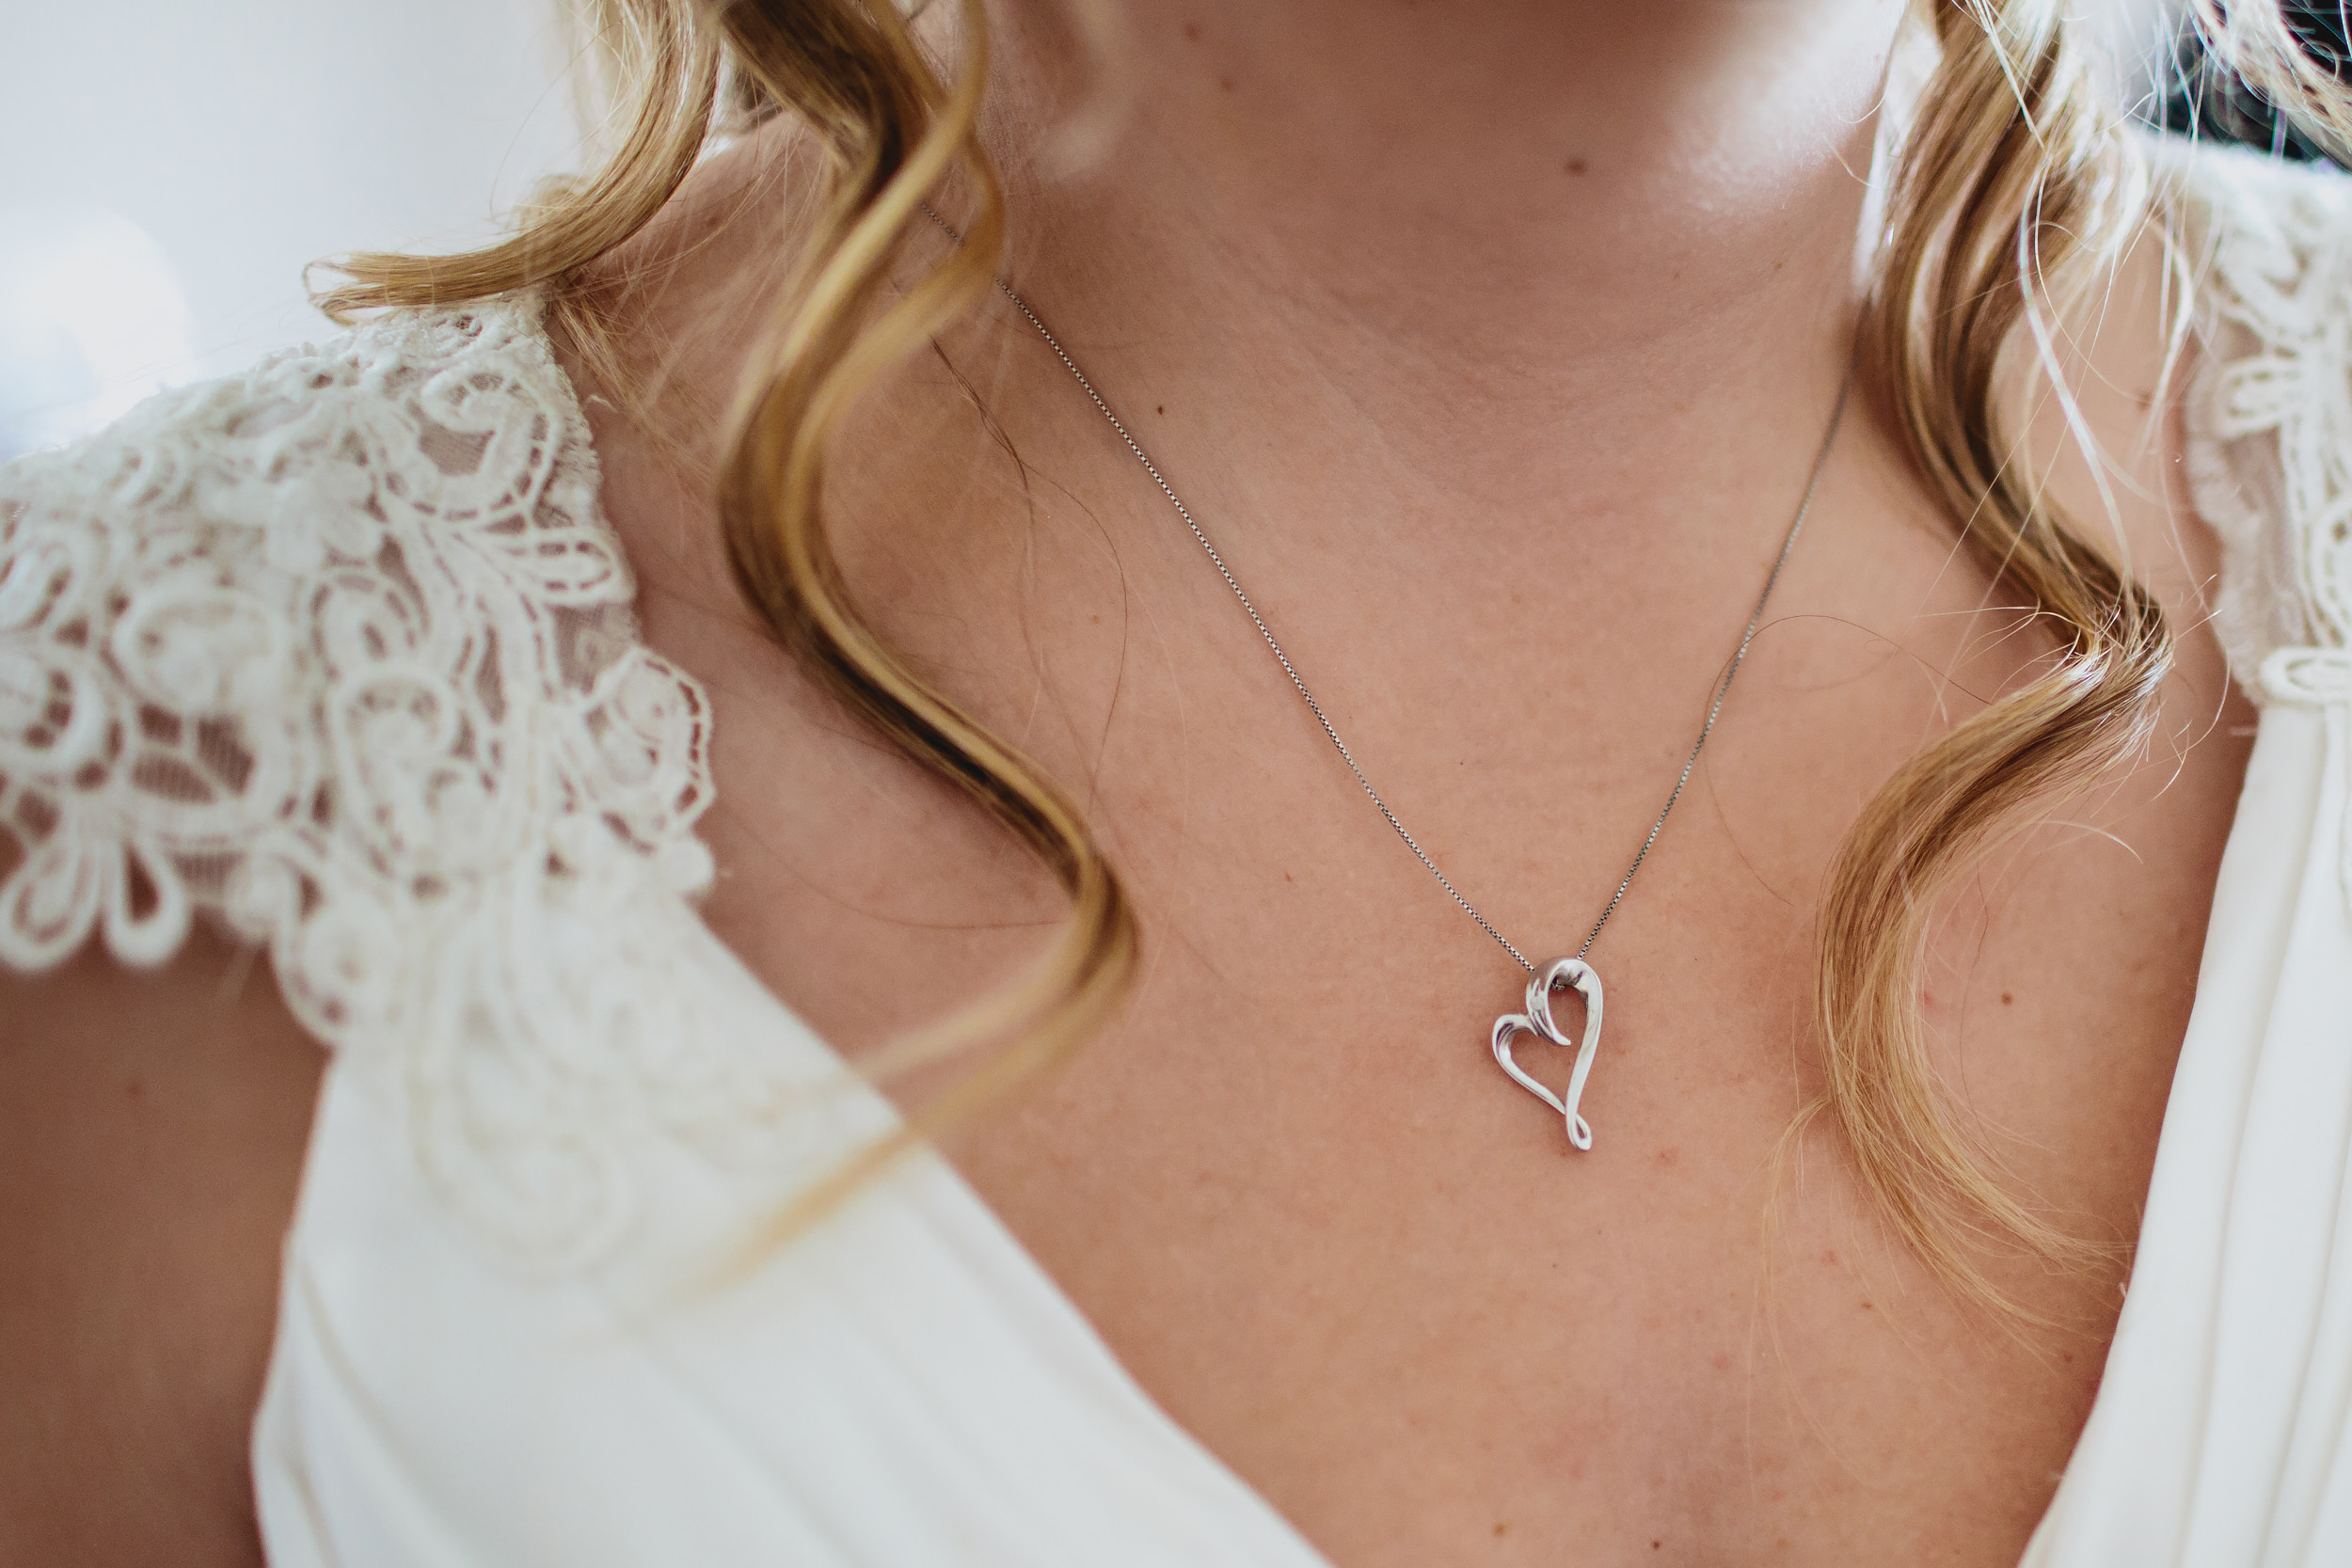 Close up of the bride wearing her necklace